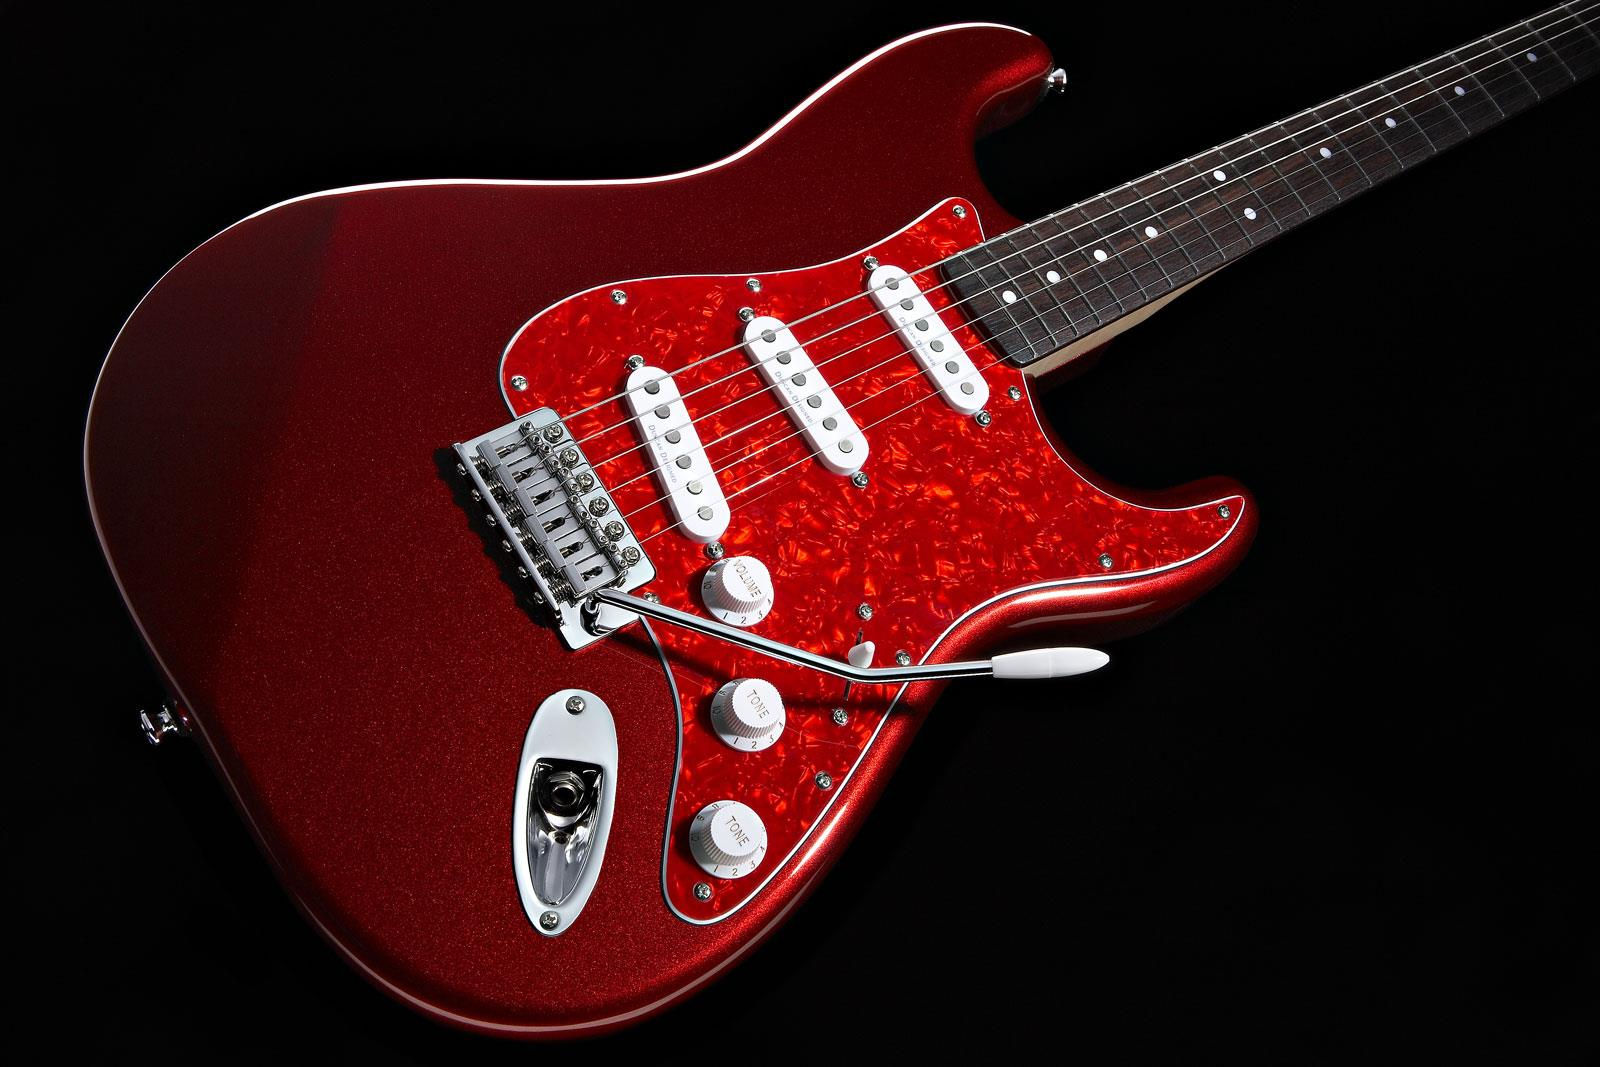 squier vintage modified stratocaster metallic red rosewood keymusic. Black Bedroom Furniture Sets. Home Design Ideas